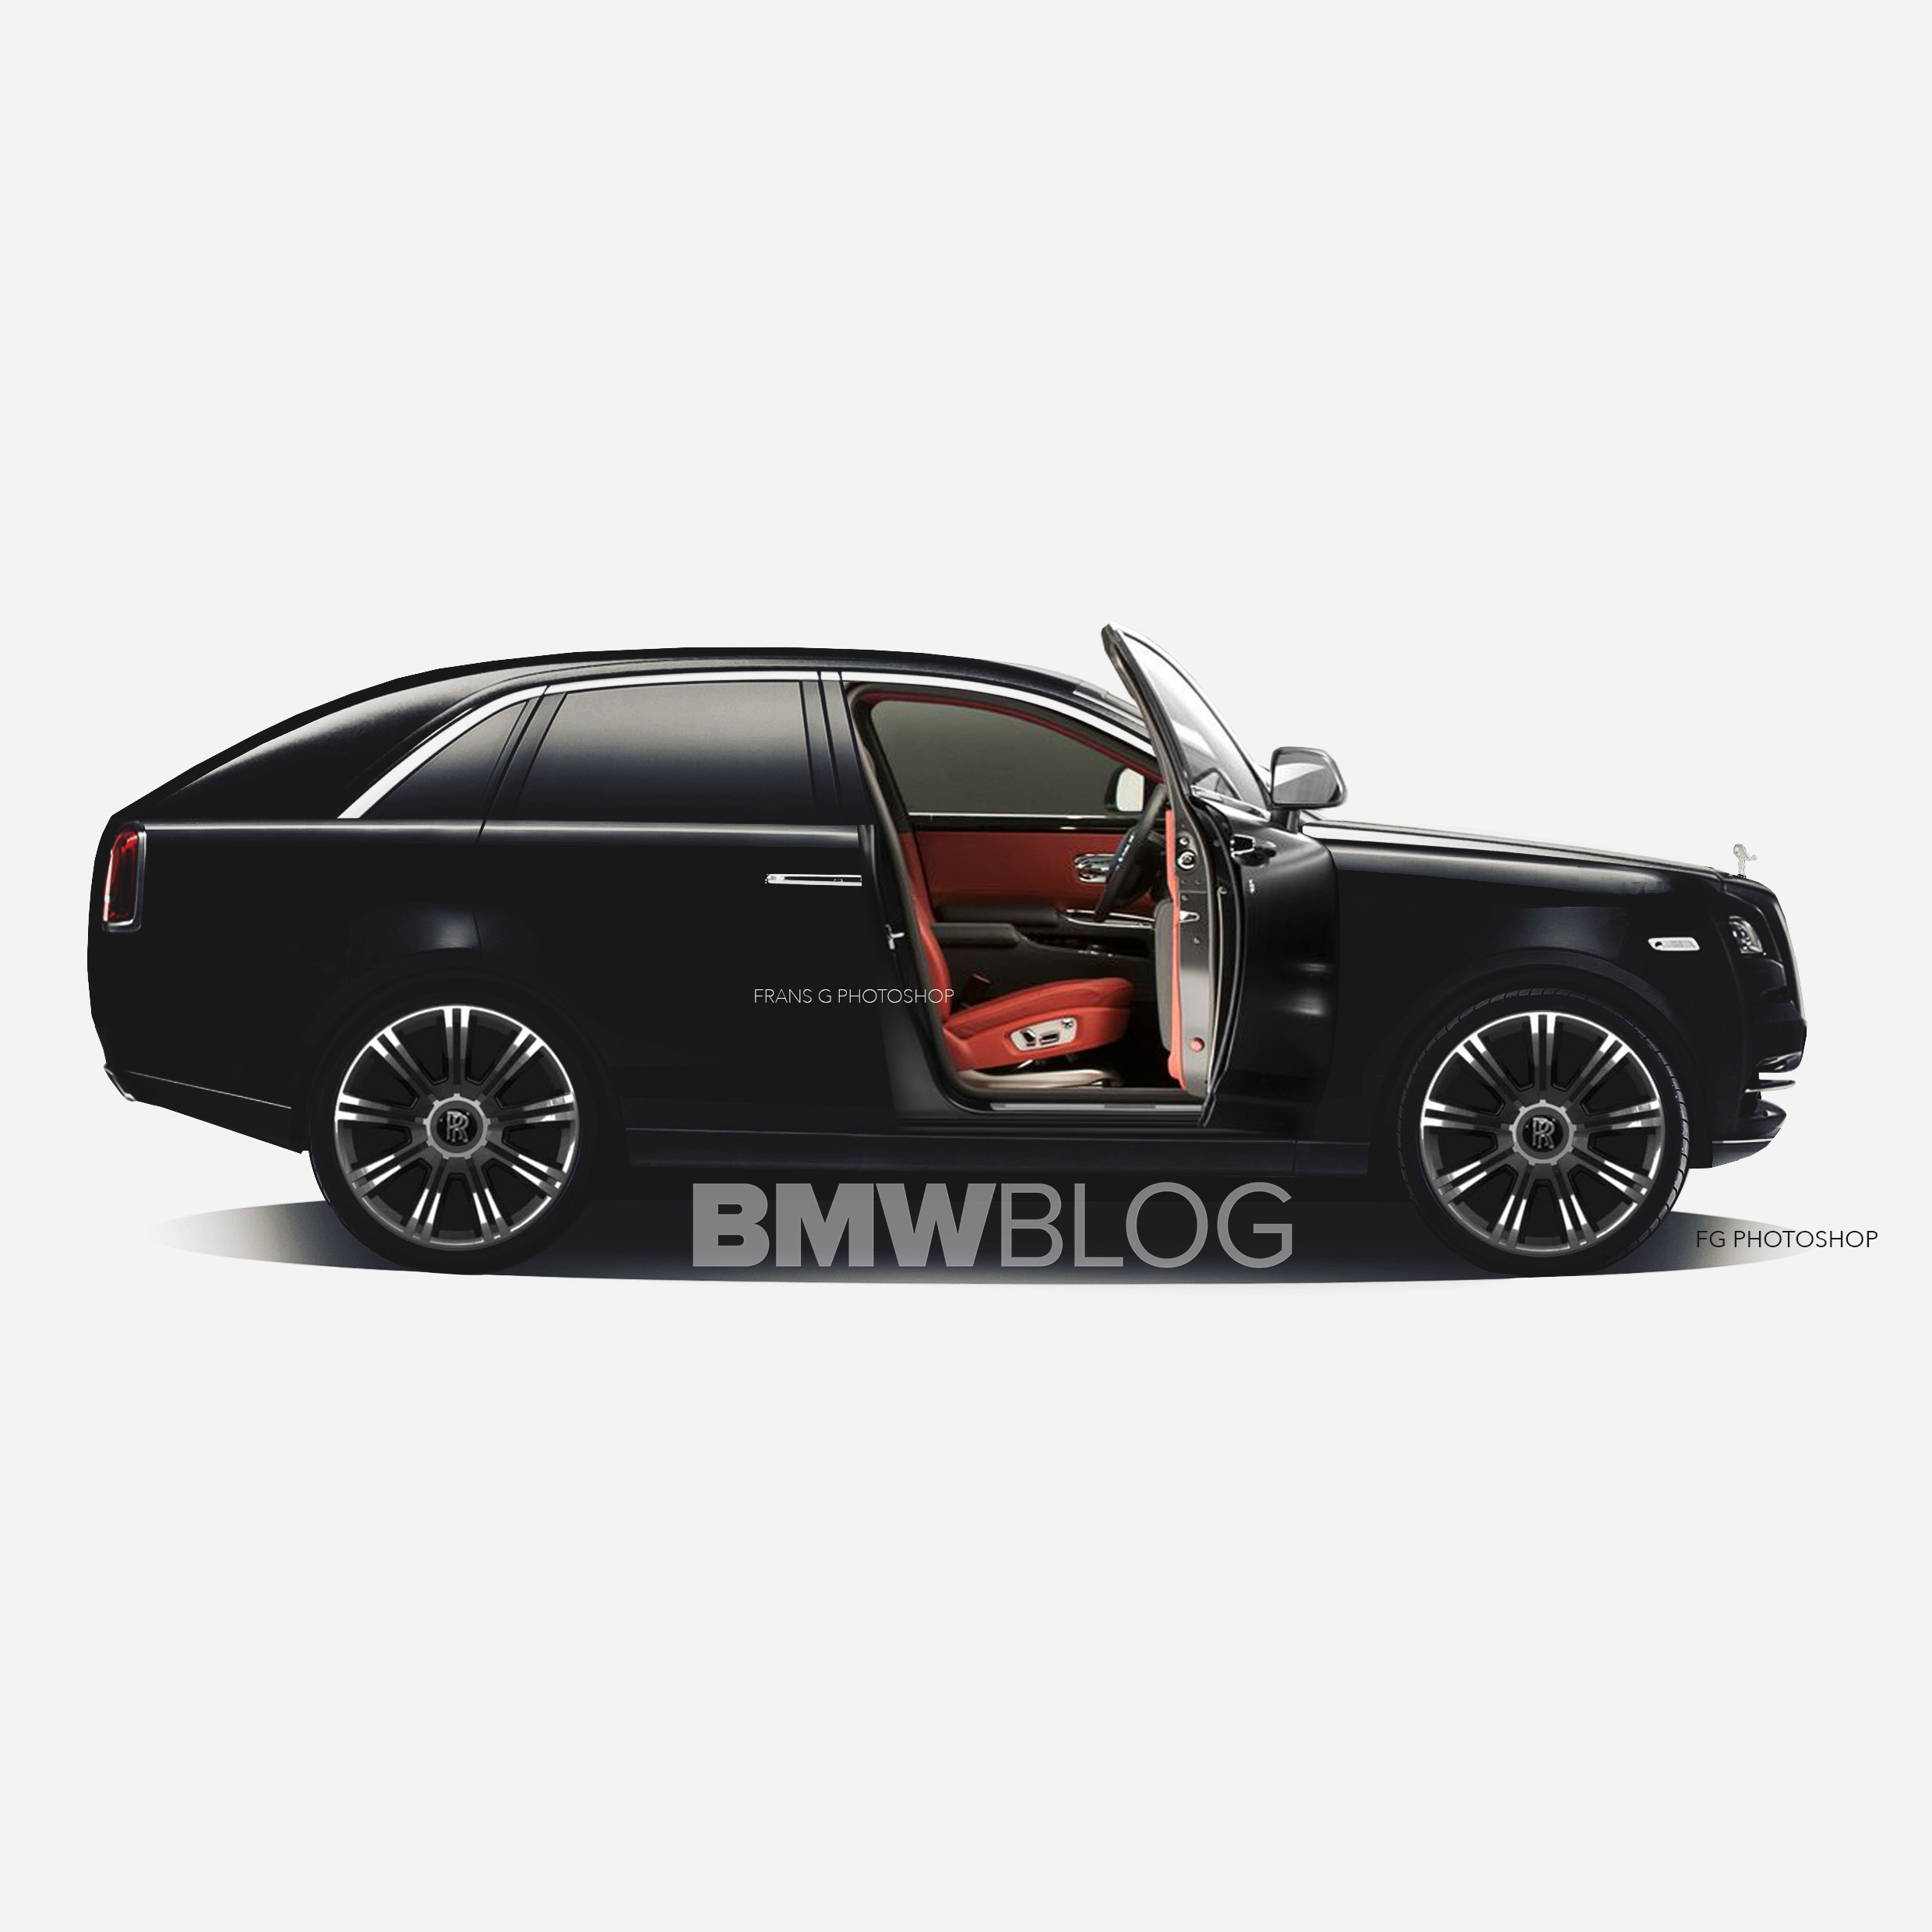 Lamborghini Price 2017 >> Rolls Royce Cullinan SUV using the new 7 Series platform